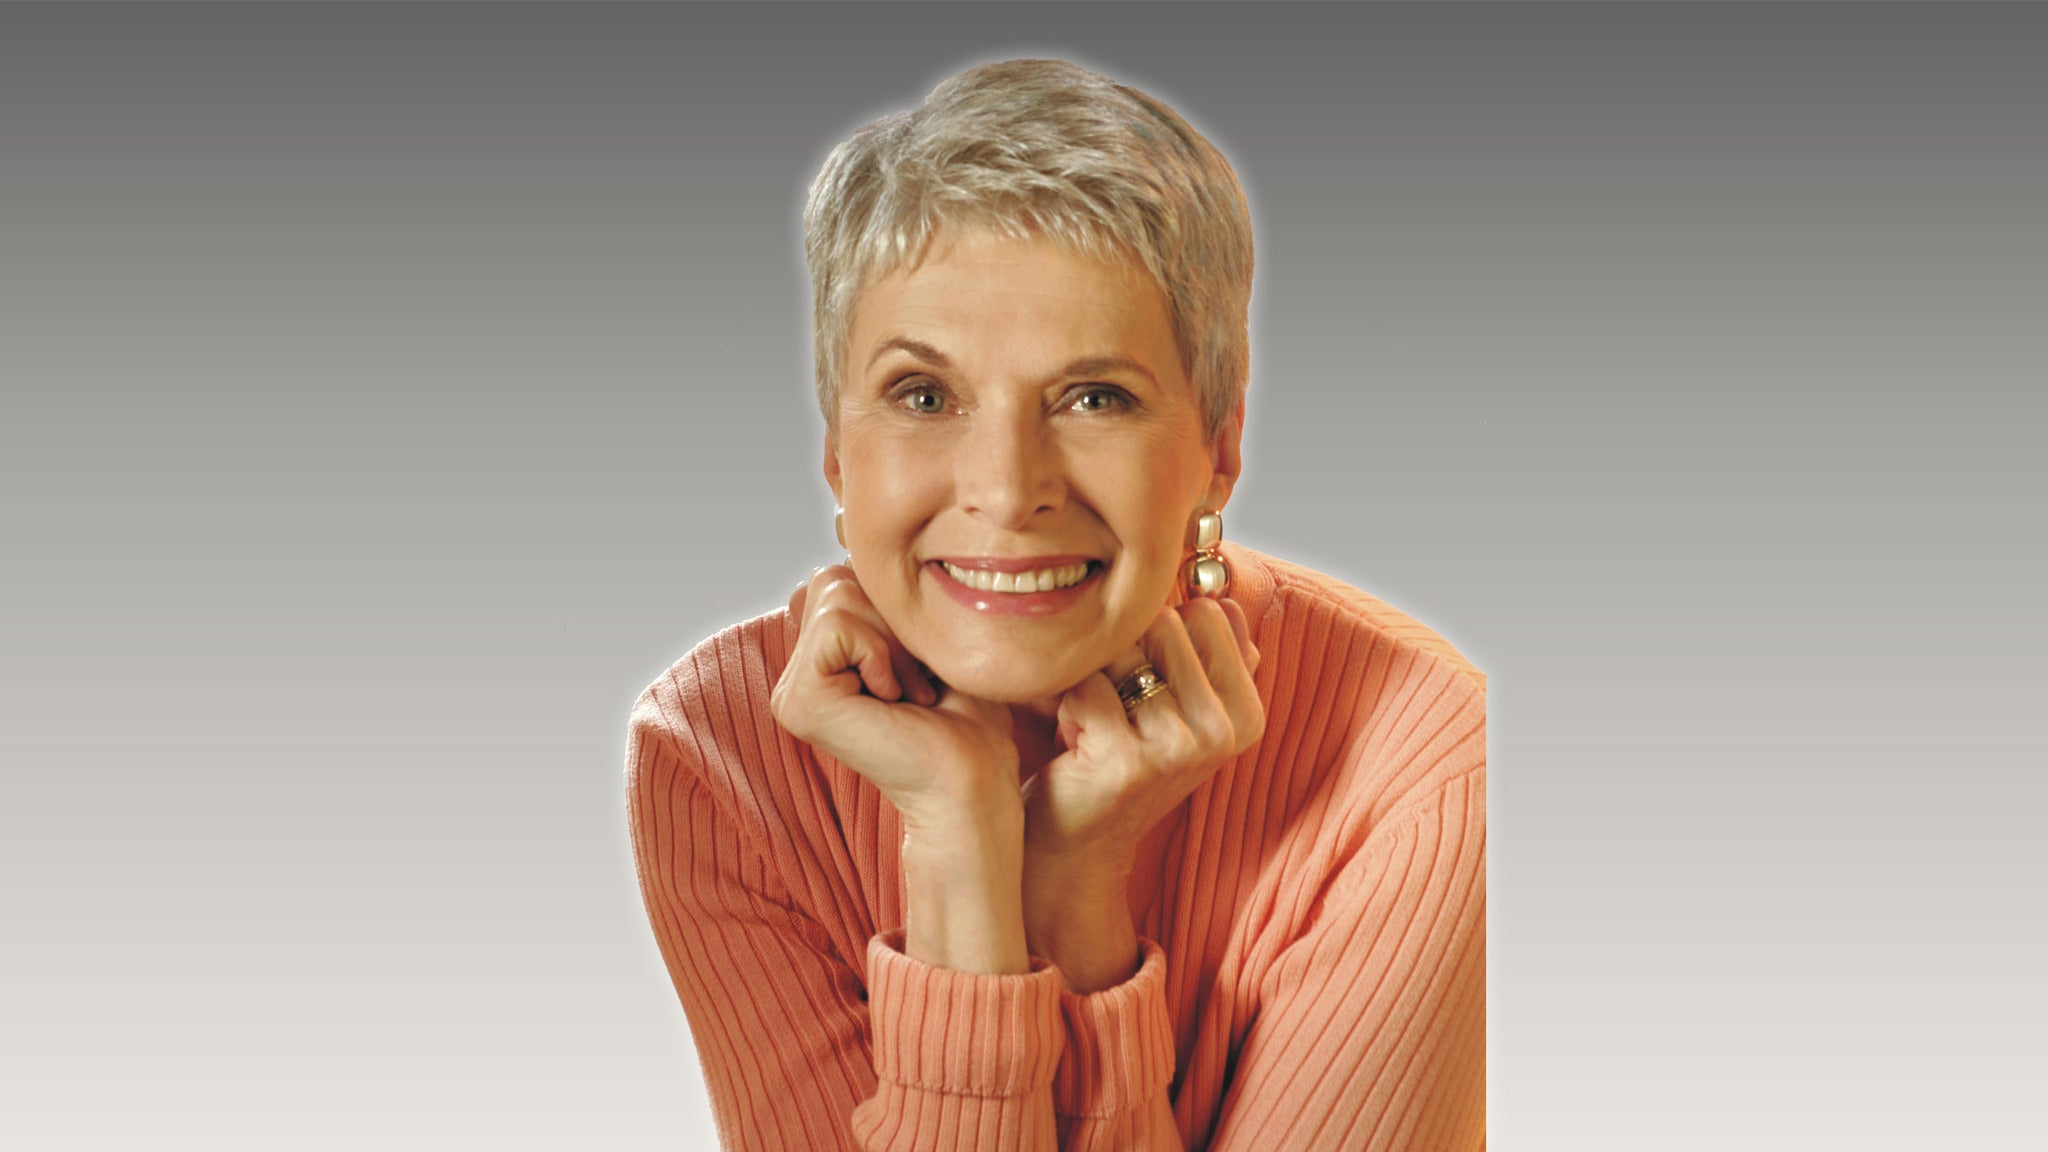 Jeanne Robertson at McCallum Theatre - Palm Desert, CA 92260